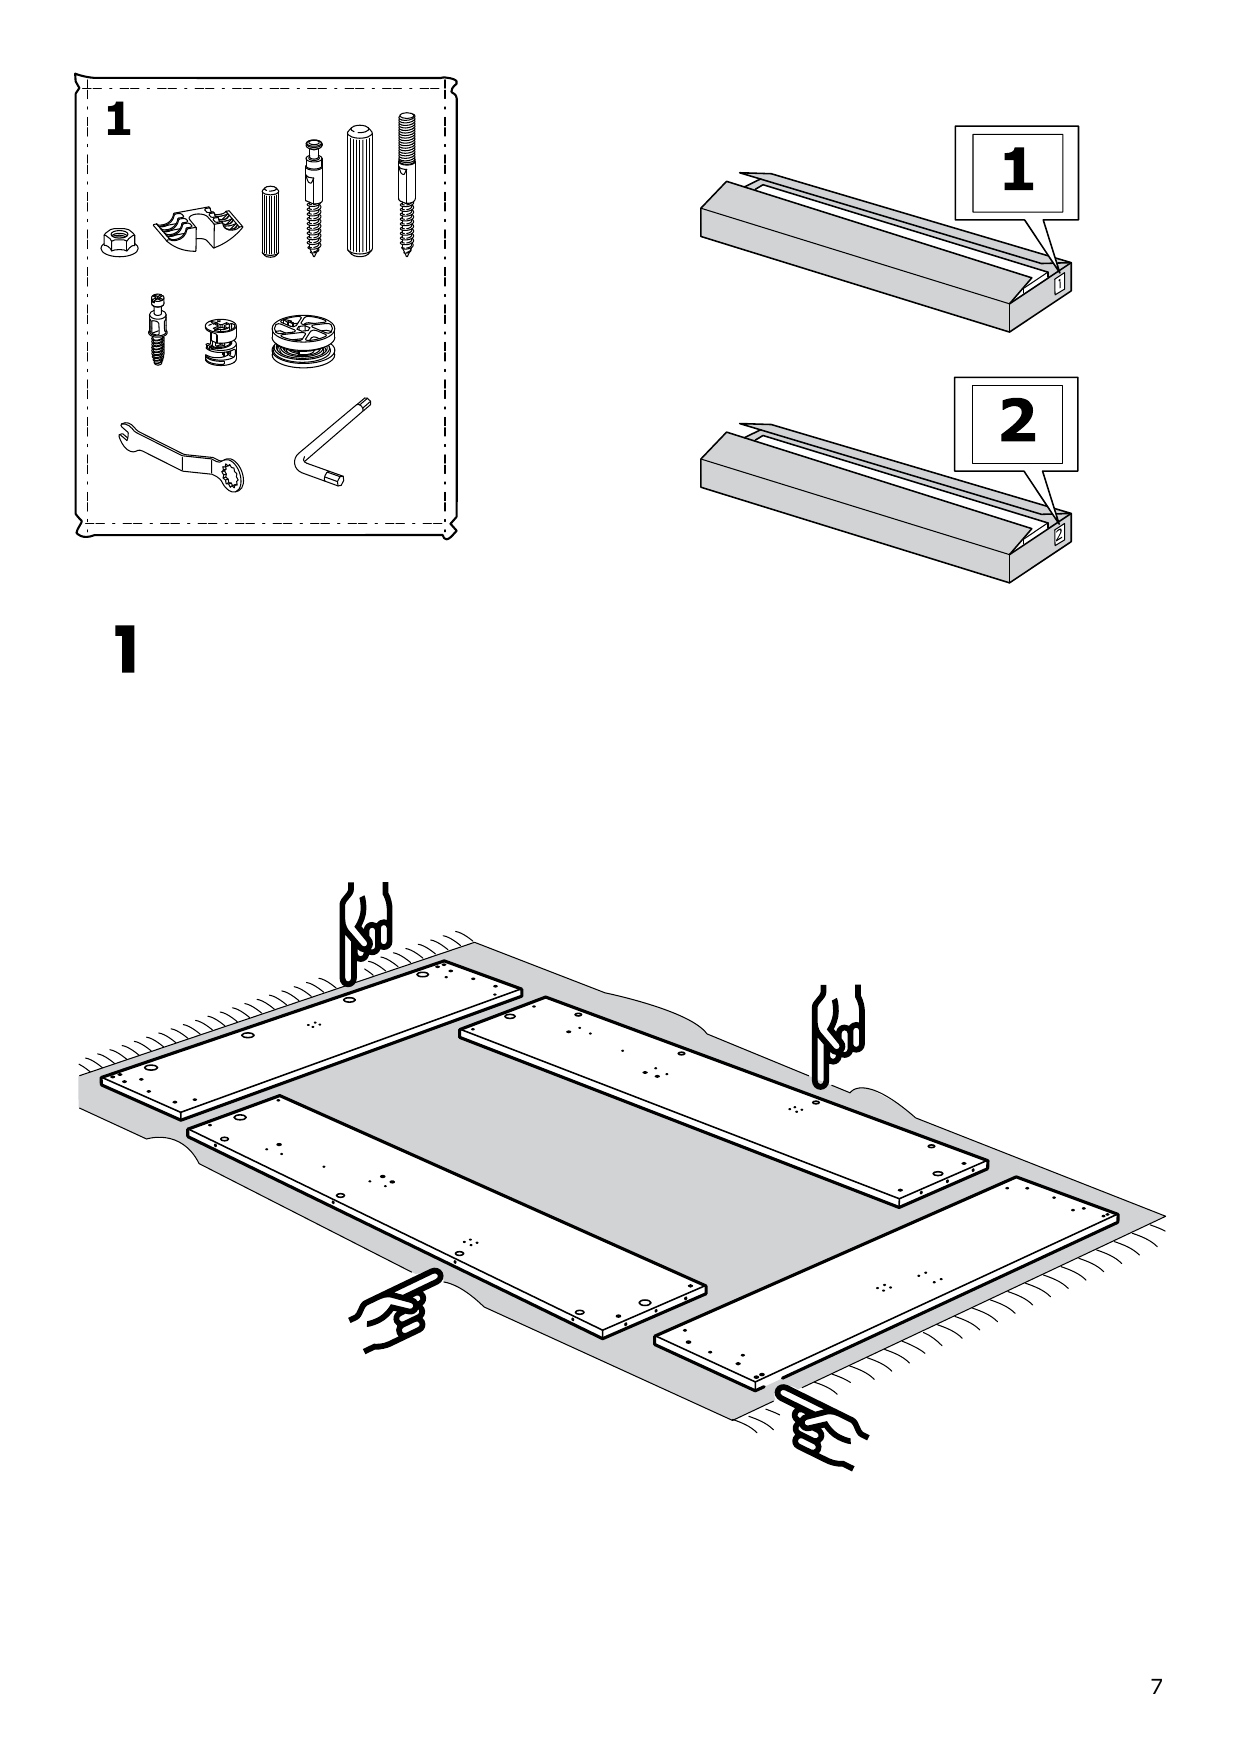 IKEA MALM Storage bed Assembly Instruction - 7